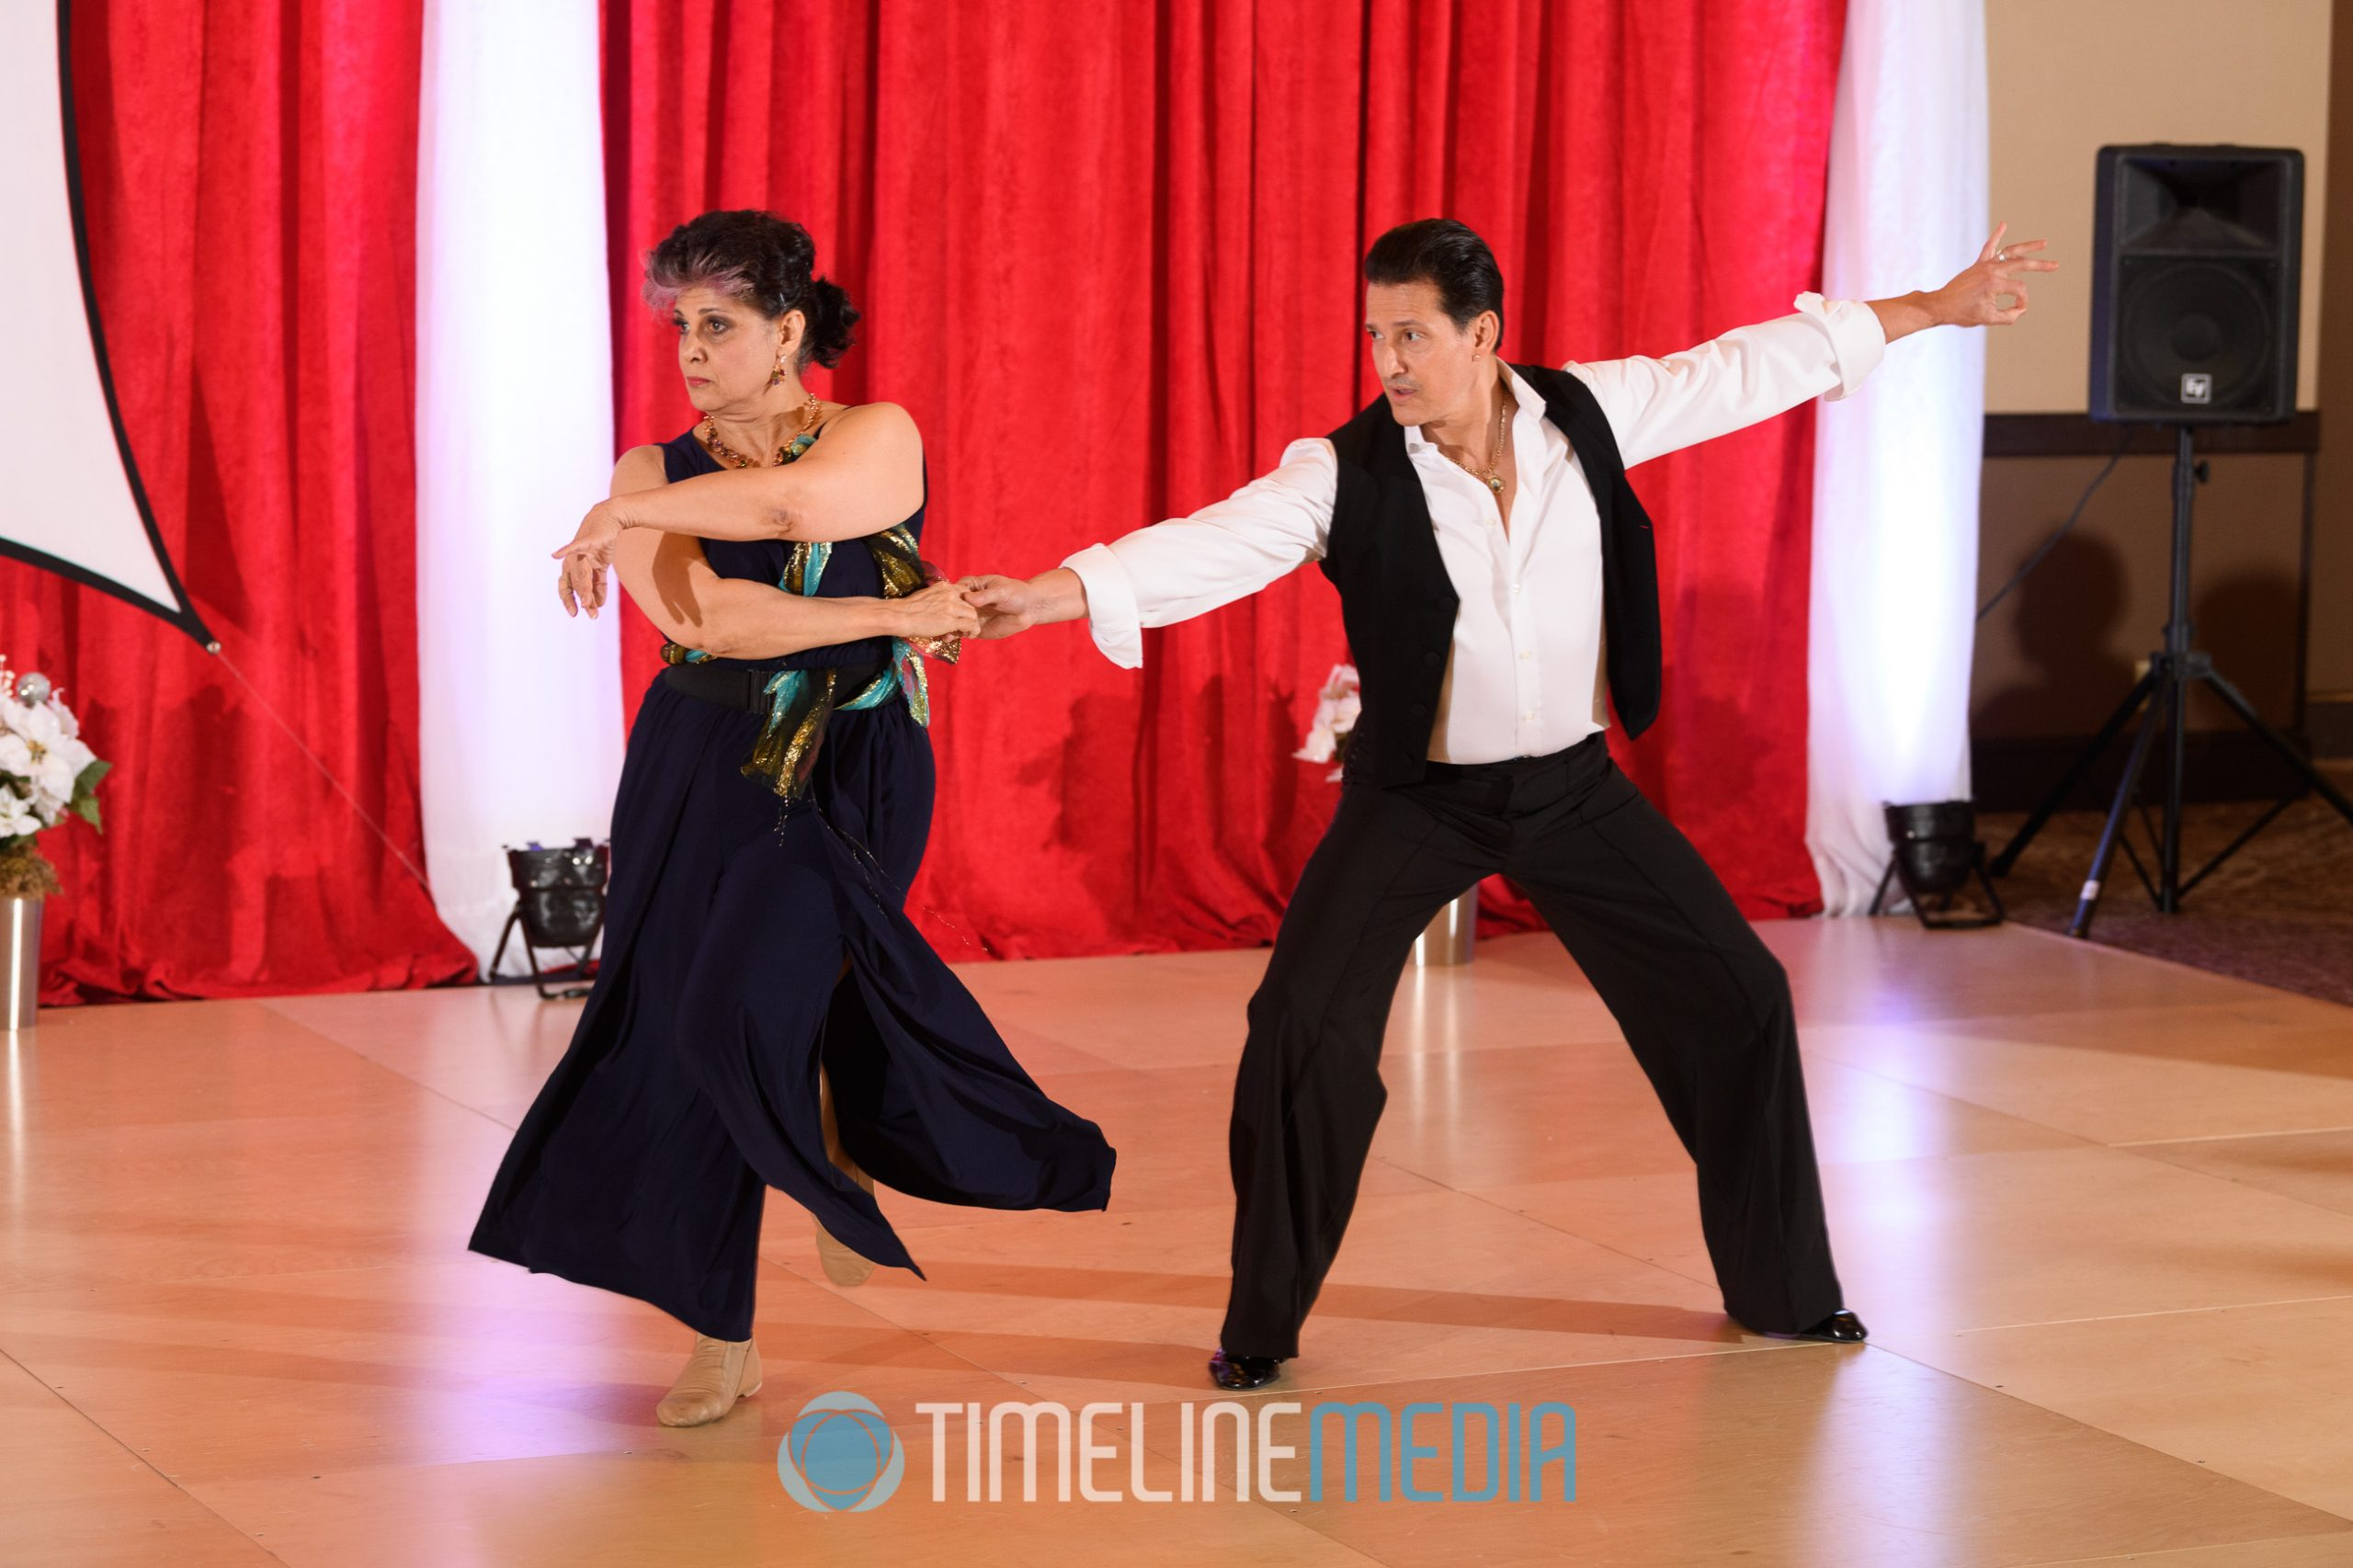 Jackie and Carlos dancing a professional show ©TimeLine Media